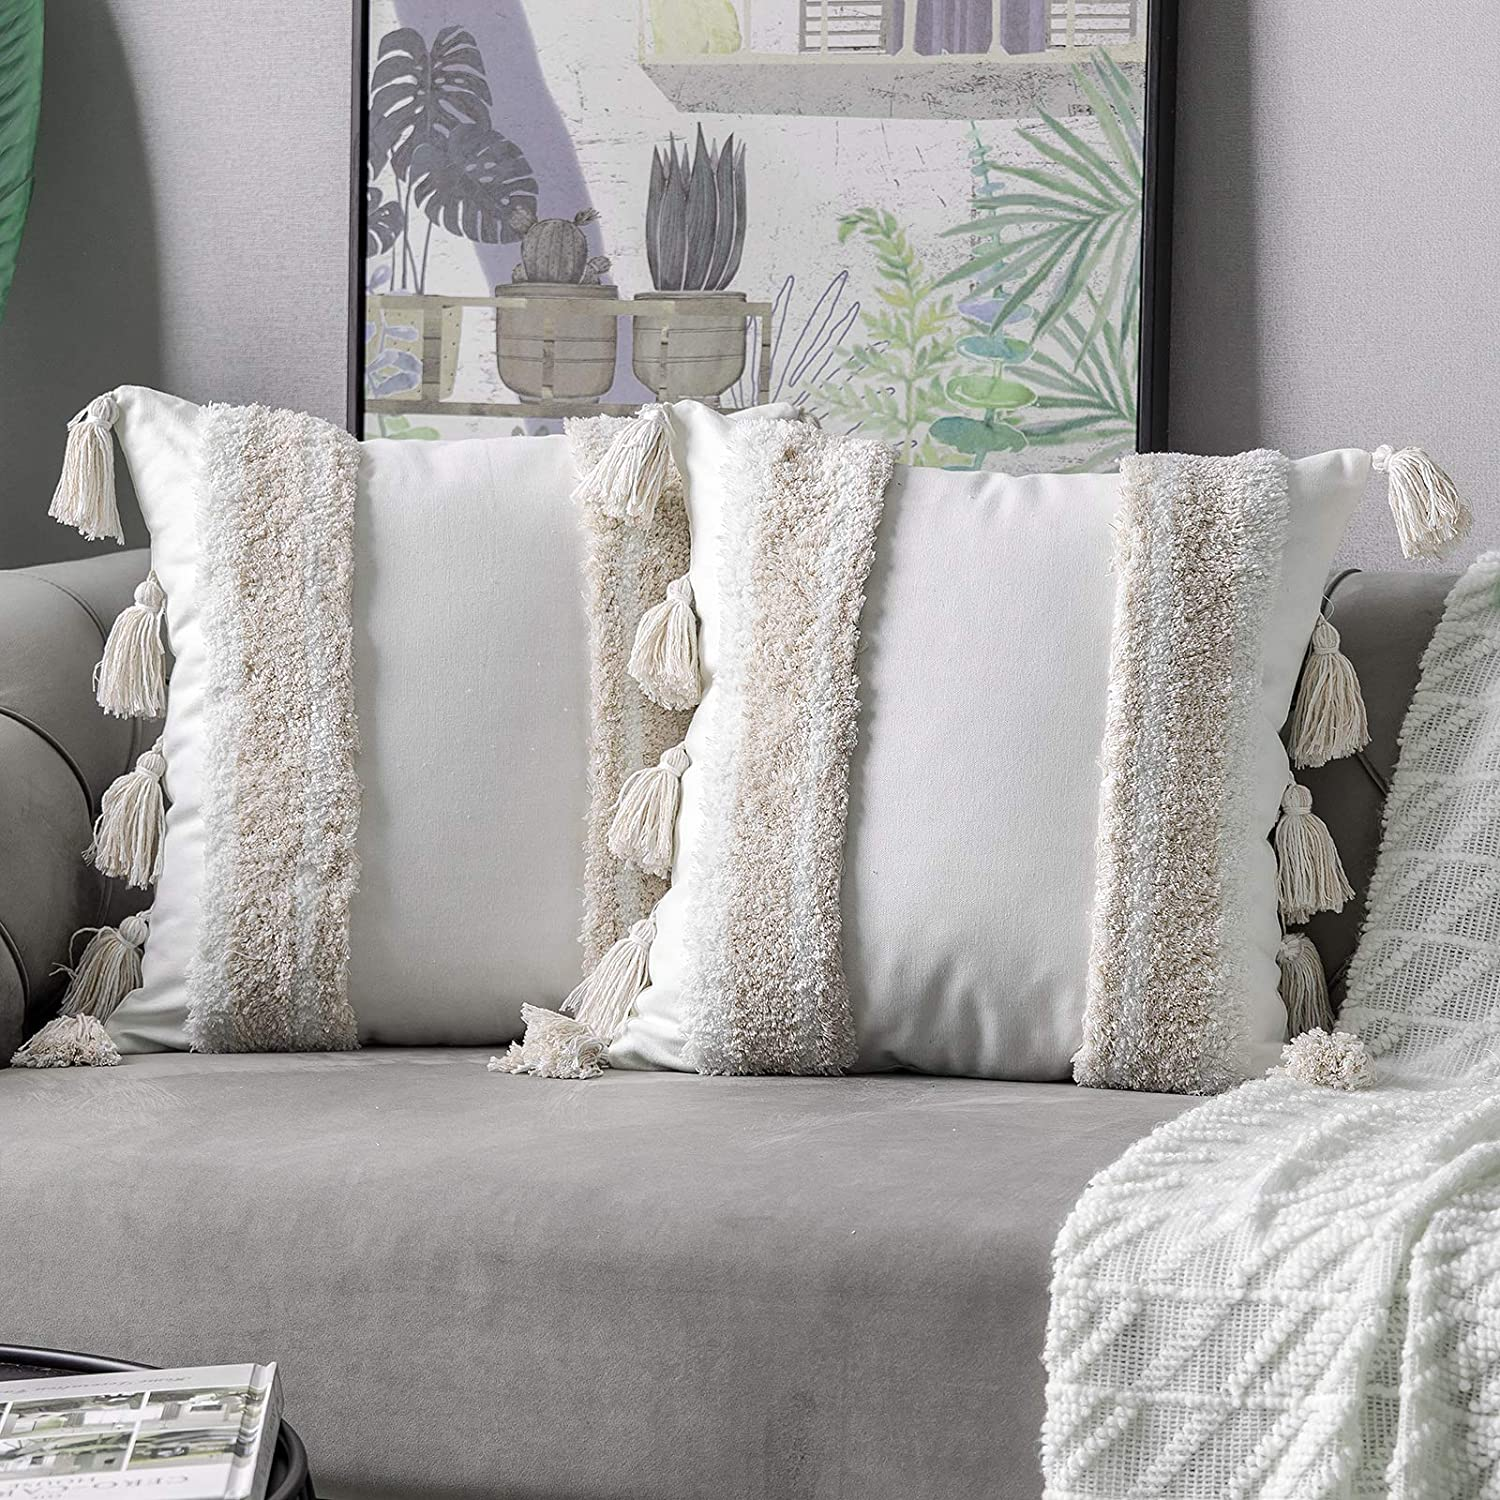 DEZENE Boho Free shipping anywhere in the nation Throw Pillow Covers: Set Cott 100% Tufted Woven of 2 Outlet SALE